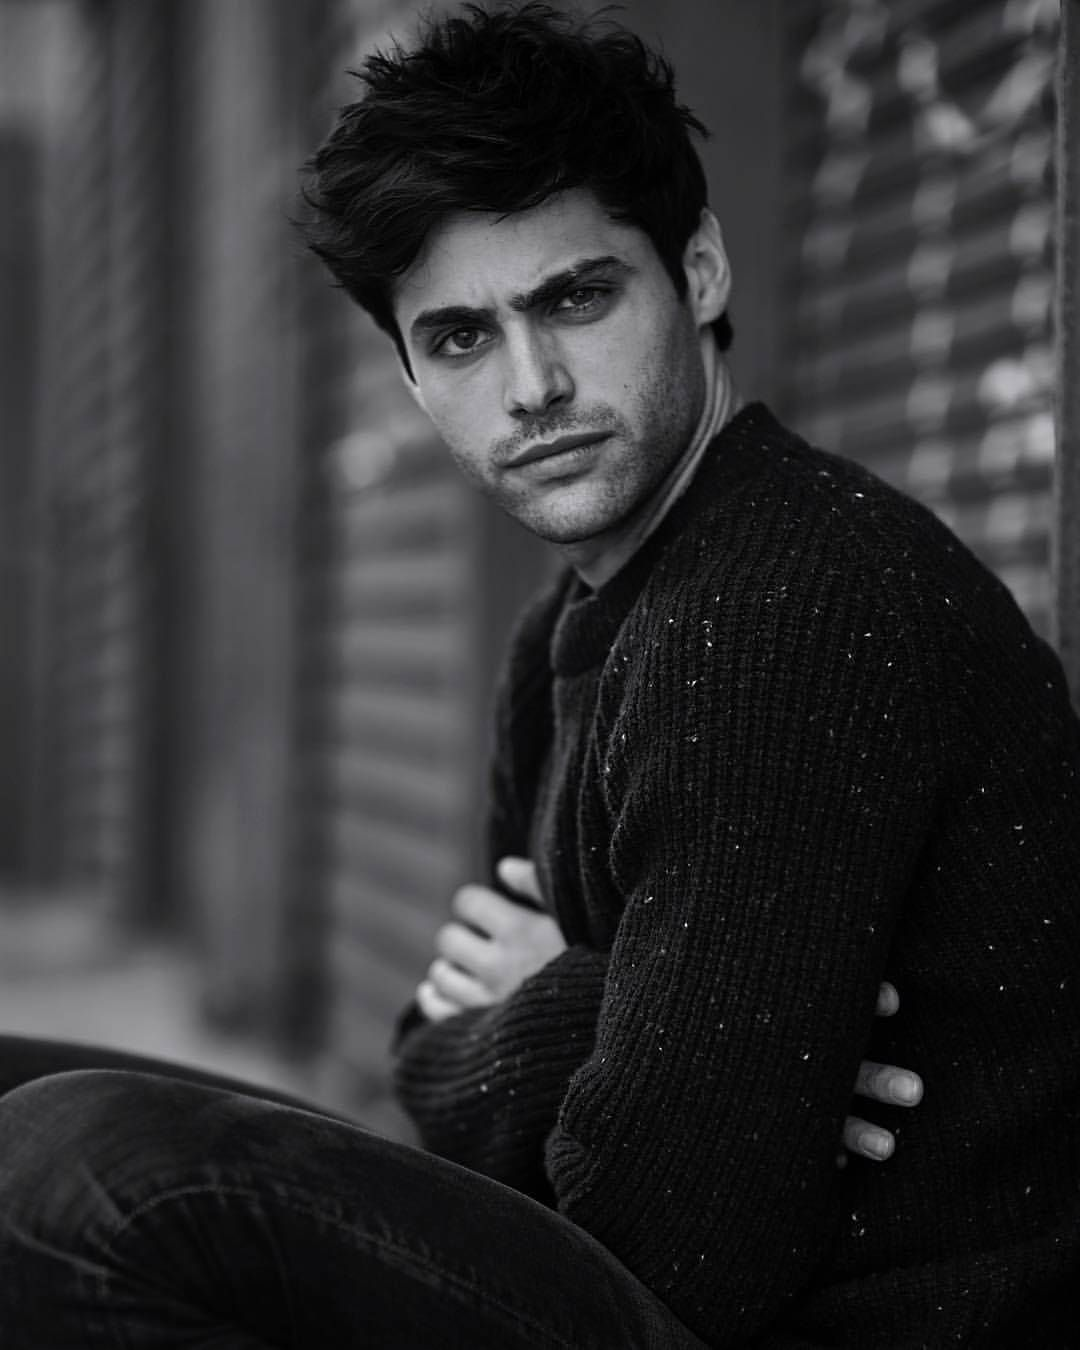 matthew daddario photoshootmatthew daddario gif, matthew daddario tumblr, matthew daddario photoshoot, matthew daddario gif hunt, matthew daddario instagram, matthew daddario png, matthew daddario личная жизнь, matthew daddario vk, matthew daddario gif hunt tumblr, matthew daddario harry shum, matthew daddario and katherine mcnamara, matthew daddario gif tumblr, matthew daddario listal, matthew daddario screencaps, matthew daddario site, matthew daddario icons, matthew daddario sister, matthew daddario official, matthew daddario snapchat, matthew daddario wikipedia